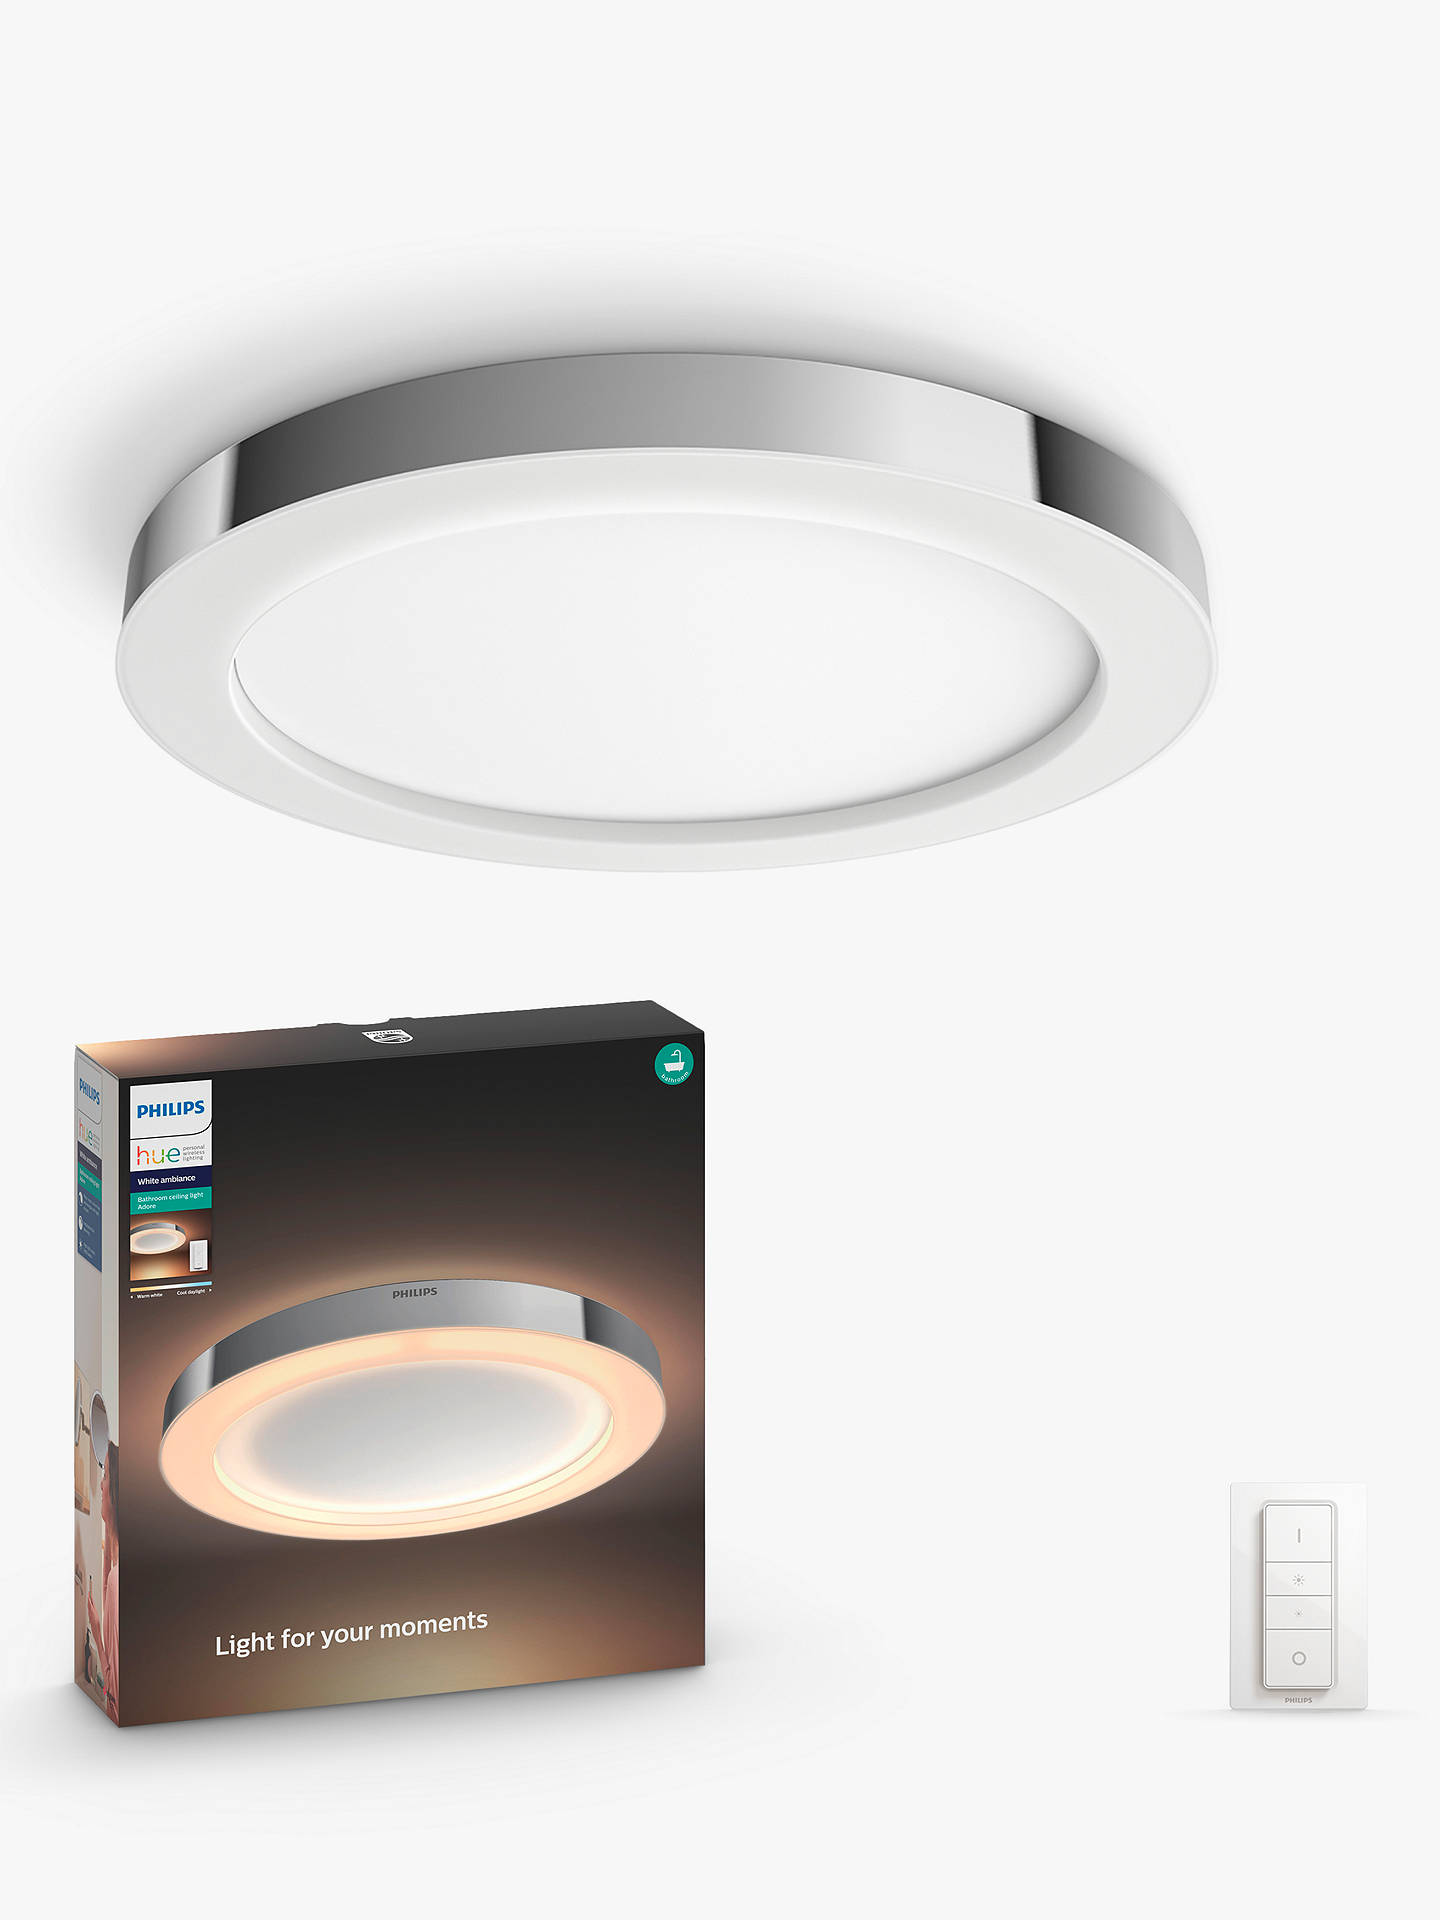 Philips Hue White Ambiance Adore Led Semi Flush Bathroom Ceiling Light And Dimmer Switch Chrome